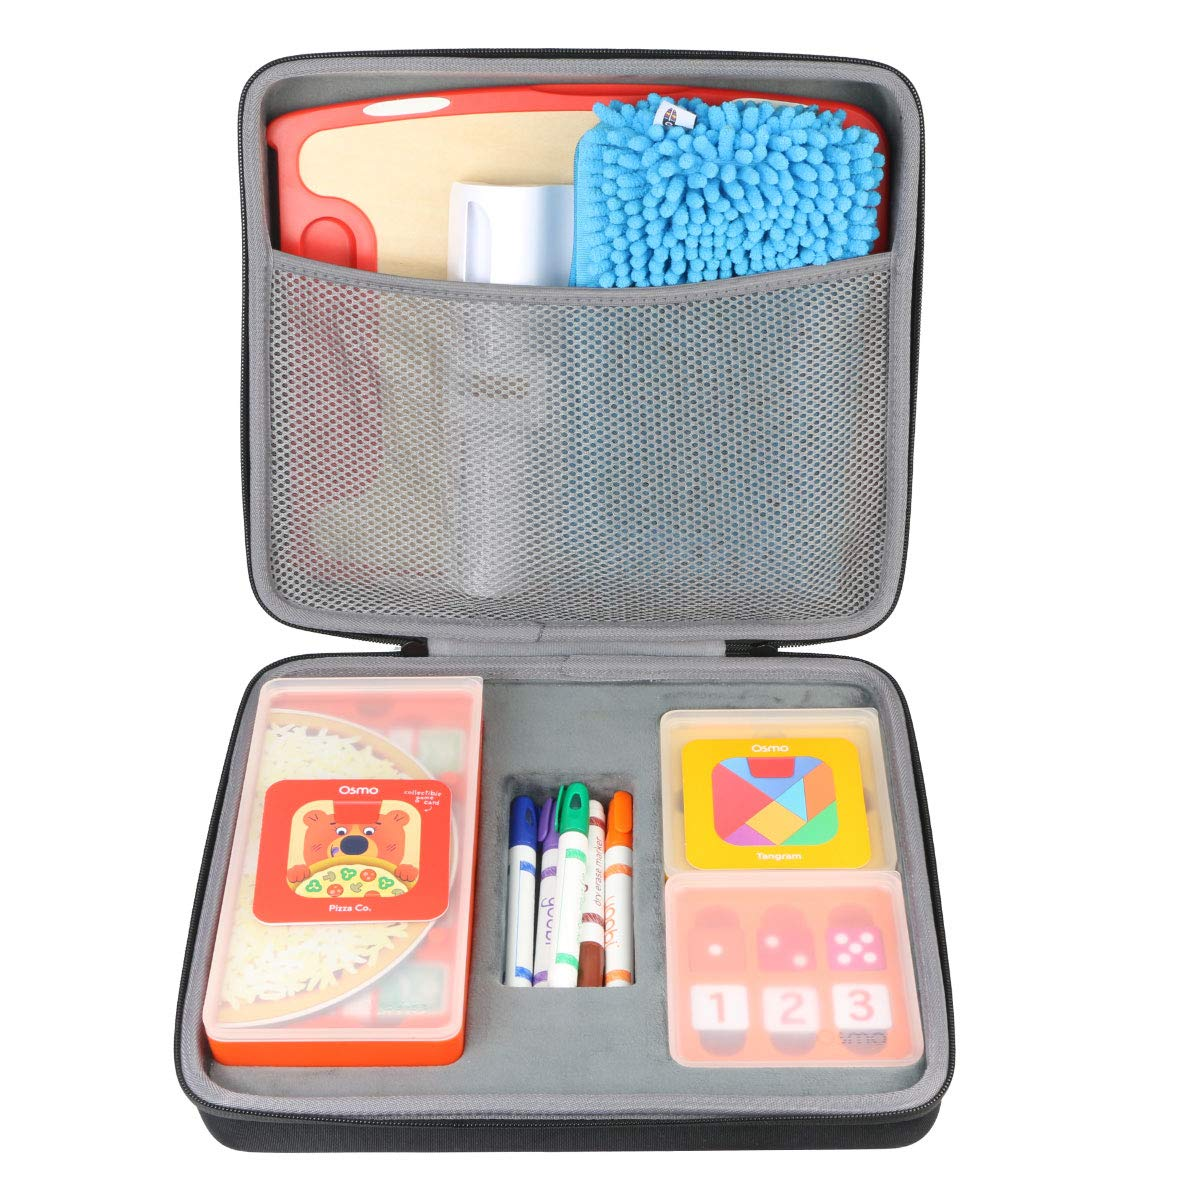 Co2Crea Organizer Case Replacement for OSMO Creative Set (fits Monster Game/Coding Jam/Coding Awbie Game/Starter Kit/Genius kit, Can't to fit The Fire Tablet) by Co2Crea